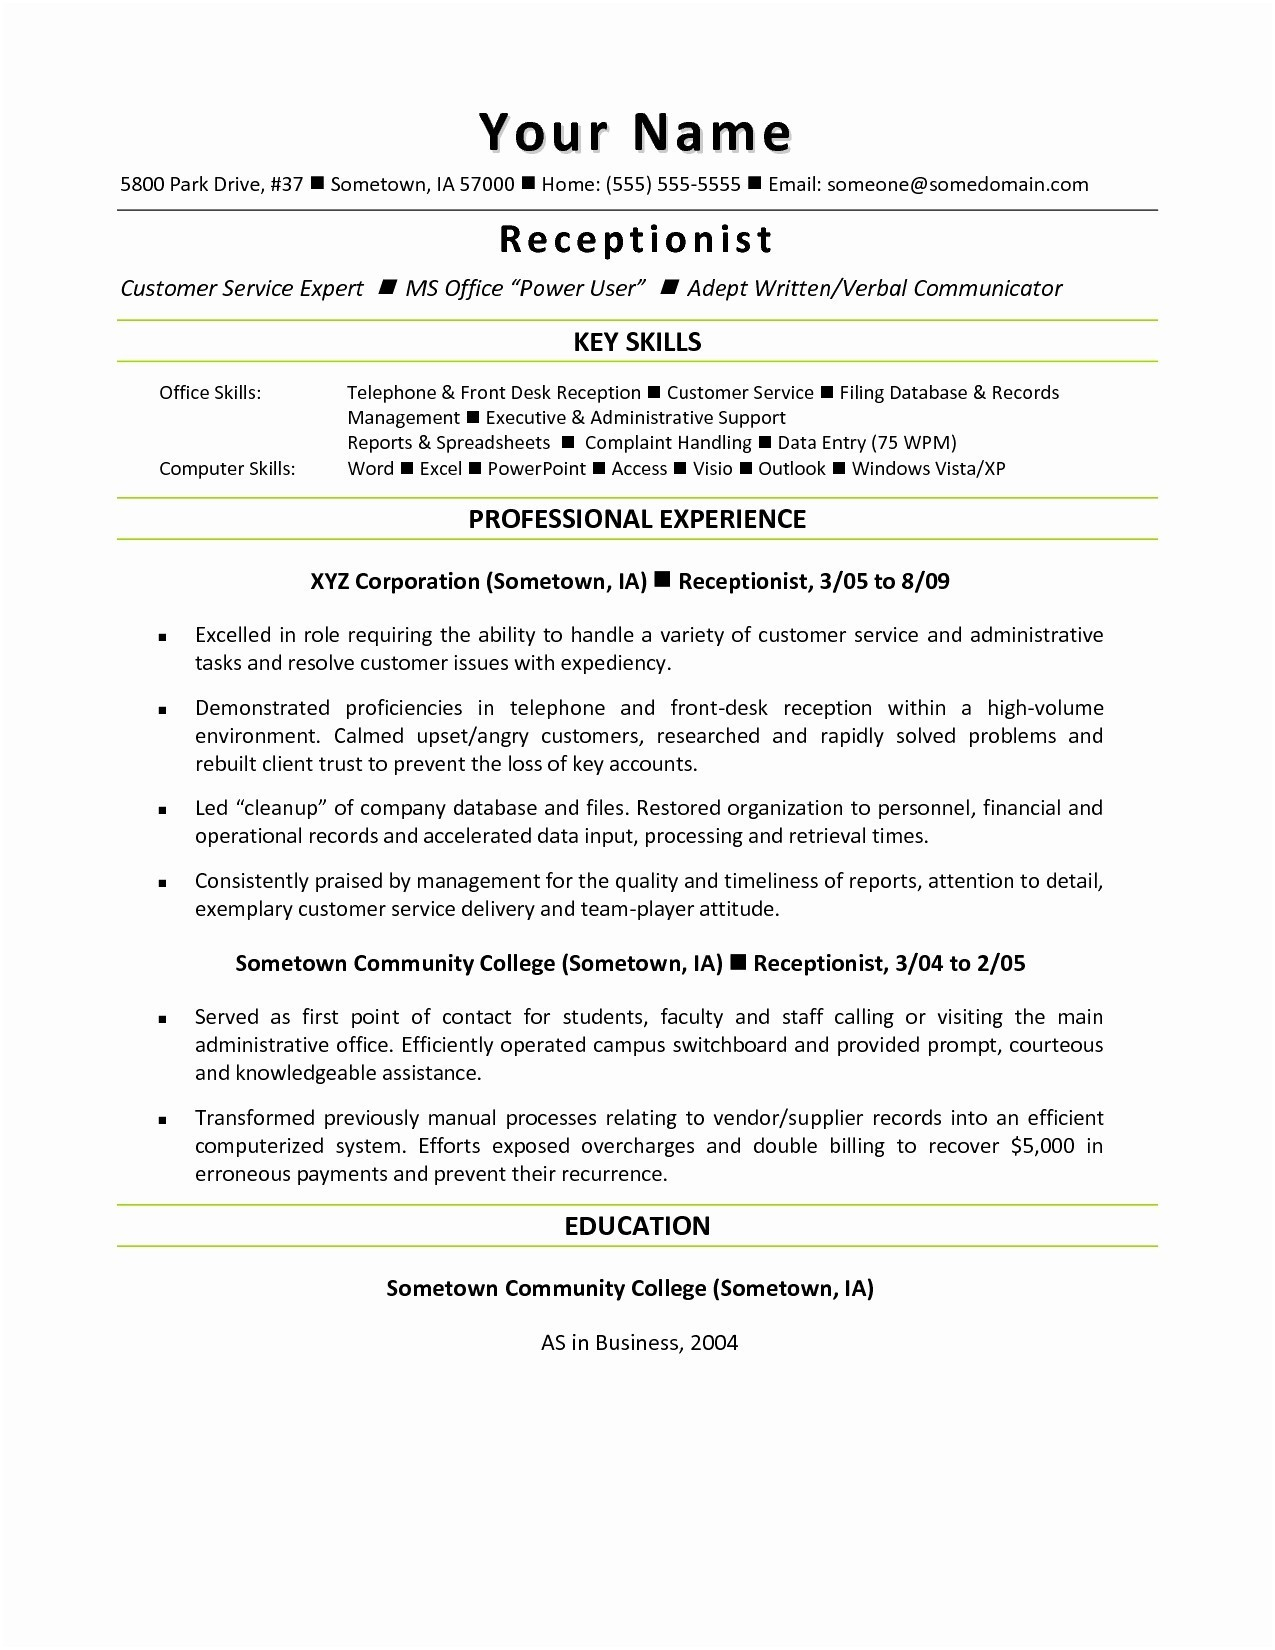 Resume and Cover Letter Template Microsoft Word - Resume Microsoft Word Fresh Resume Mail format Sample Fresh